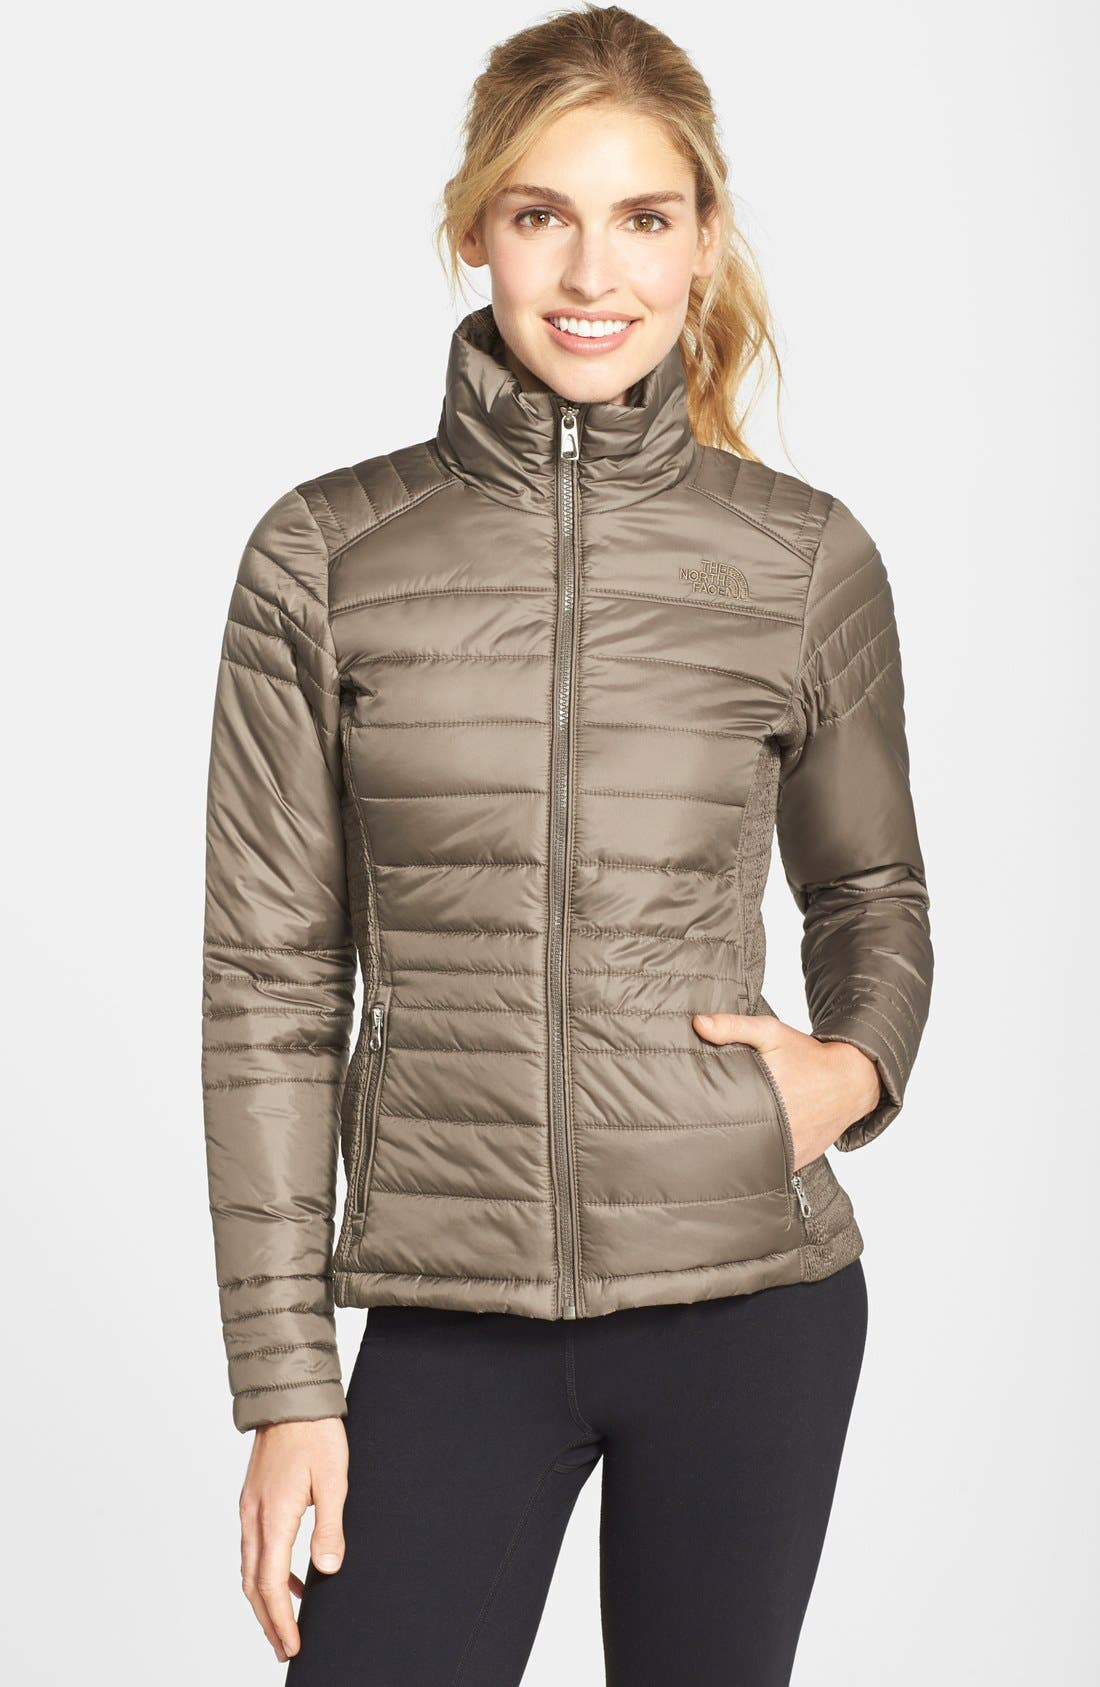 Alternate Image 1 Selected - The North Face 'Aleycia' Insulated Jacket (Nordstrom Exclusive)